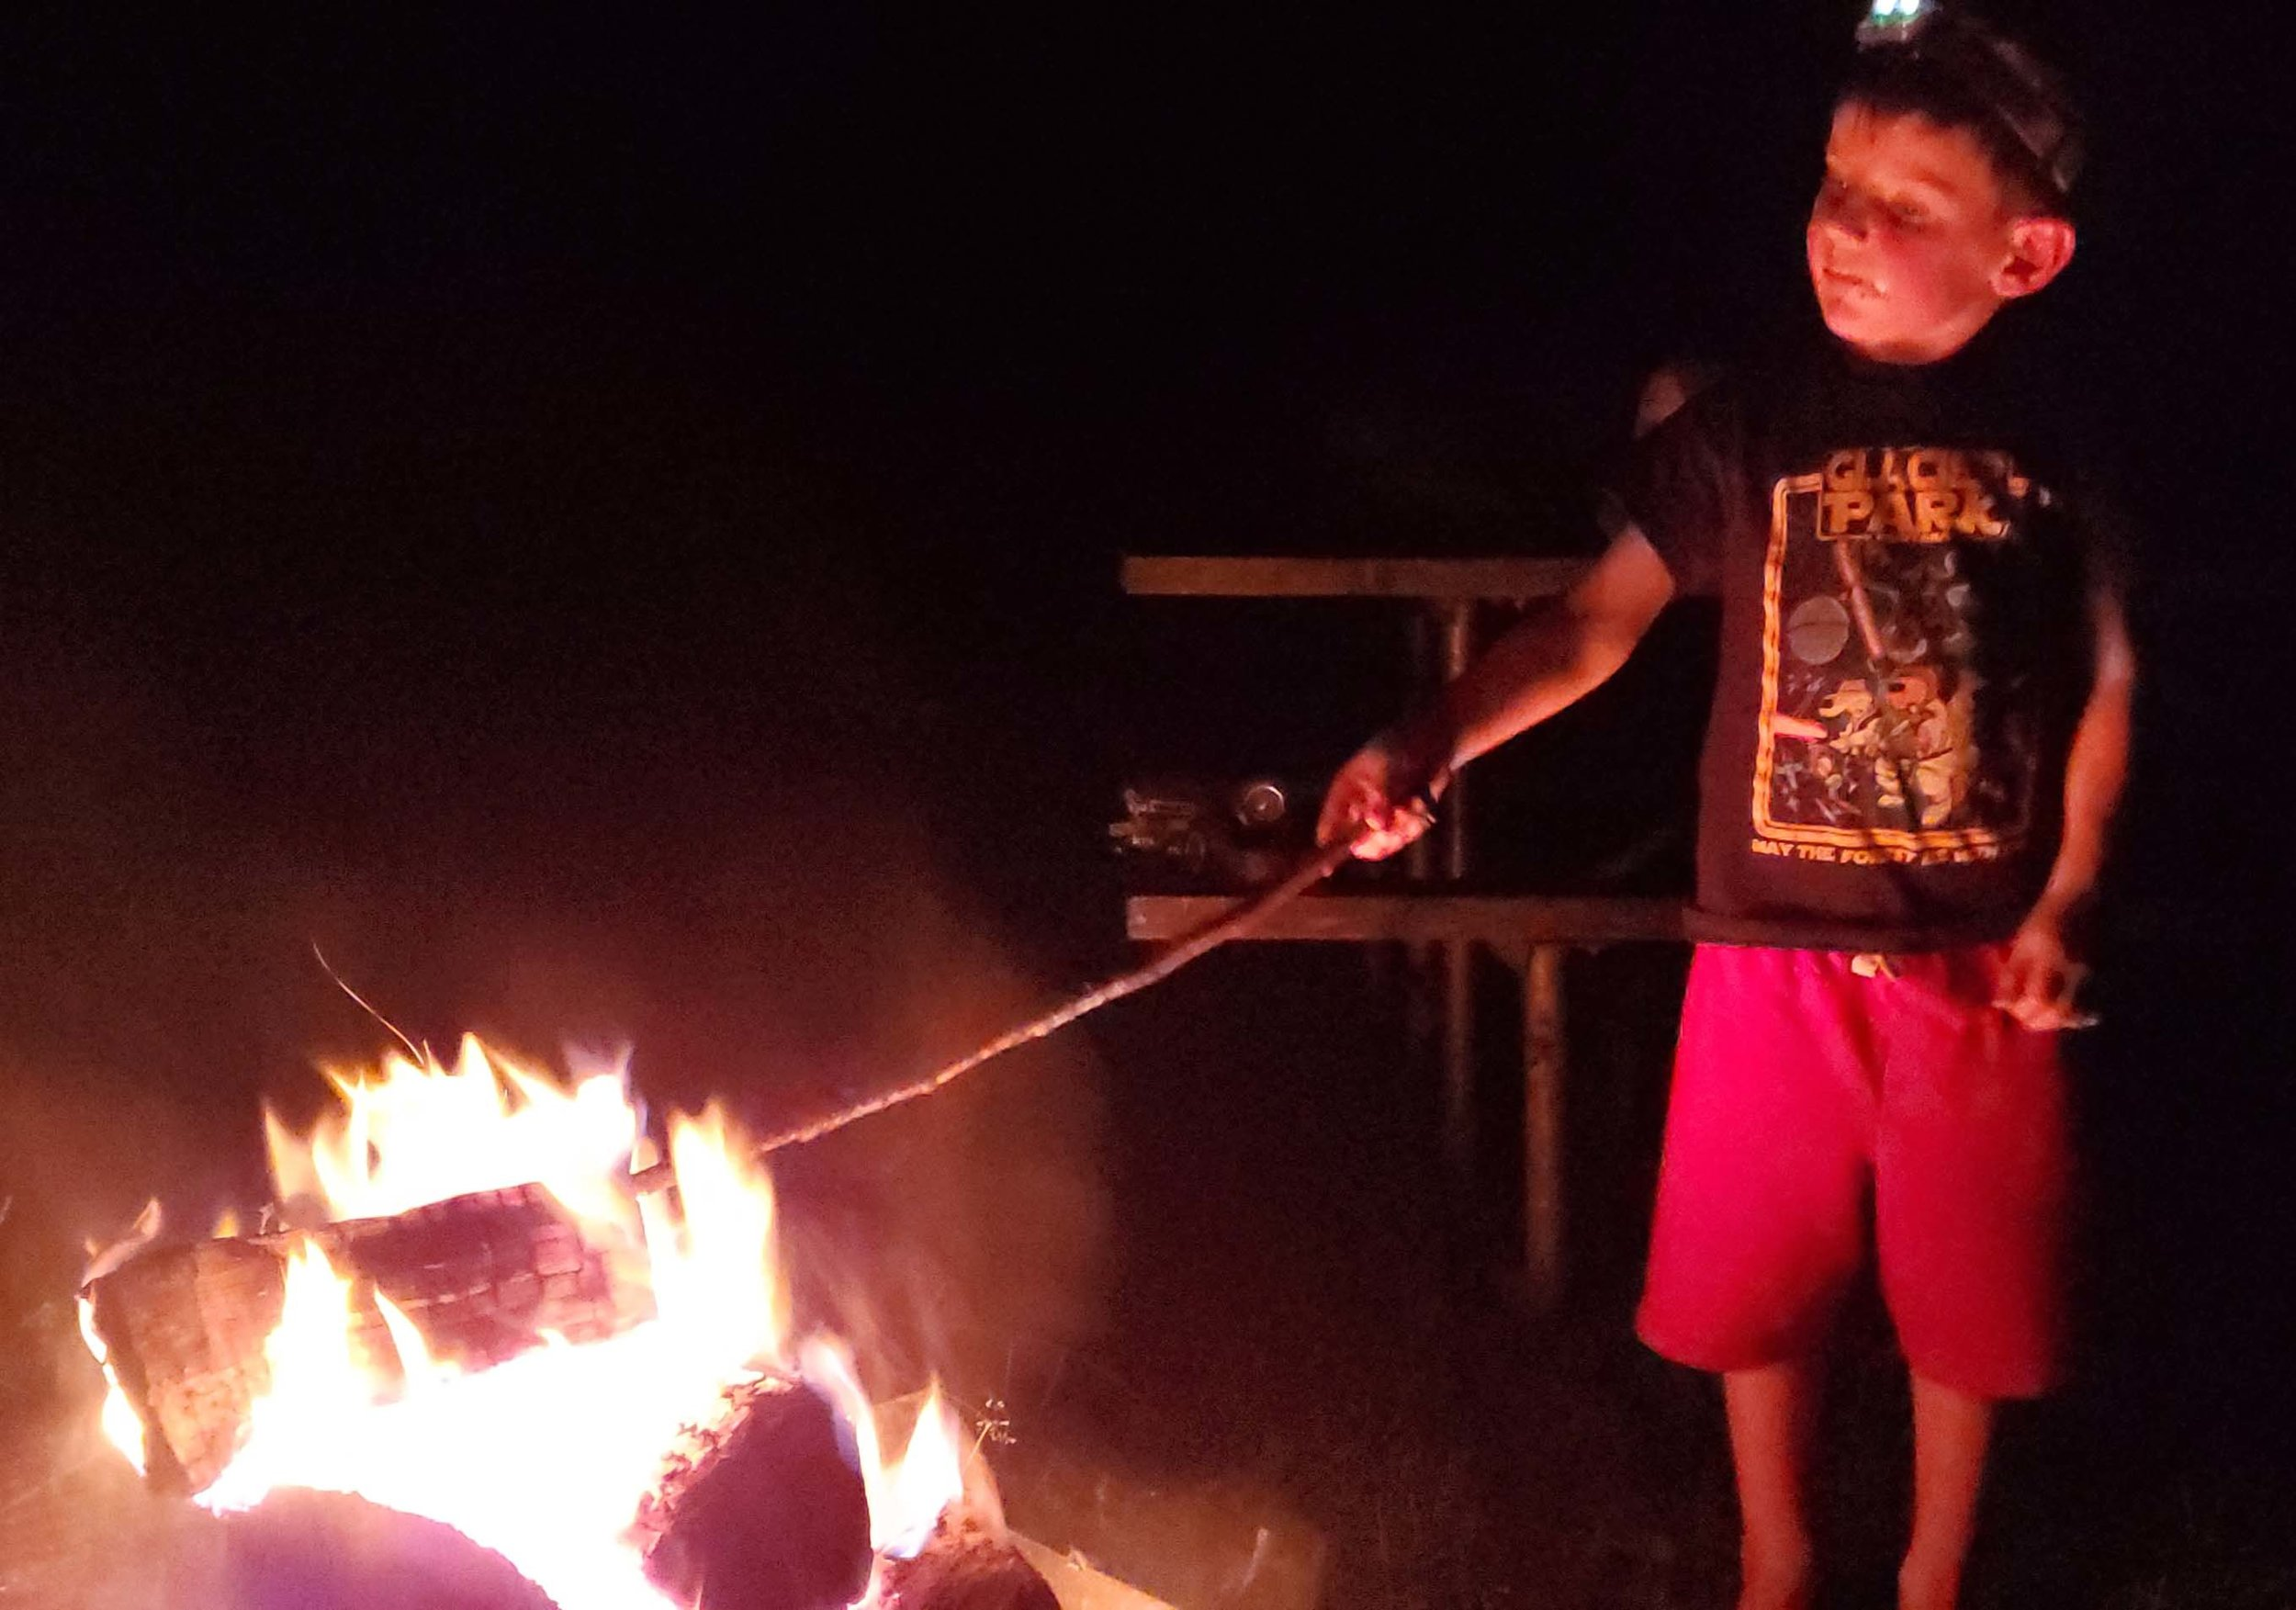 S'mores and a fire - great way to start the trip. Here camping in Bowman Lake State Park in NY